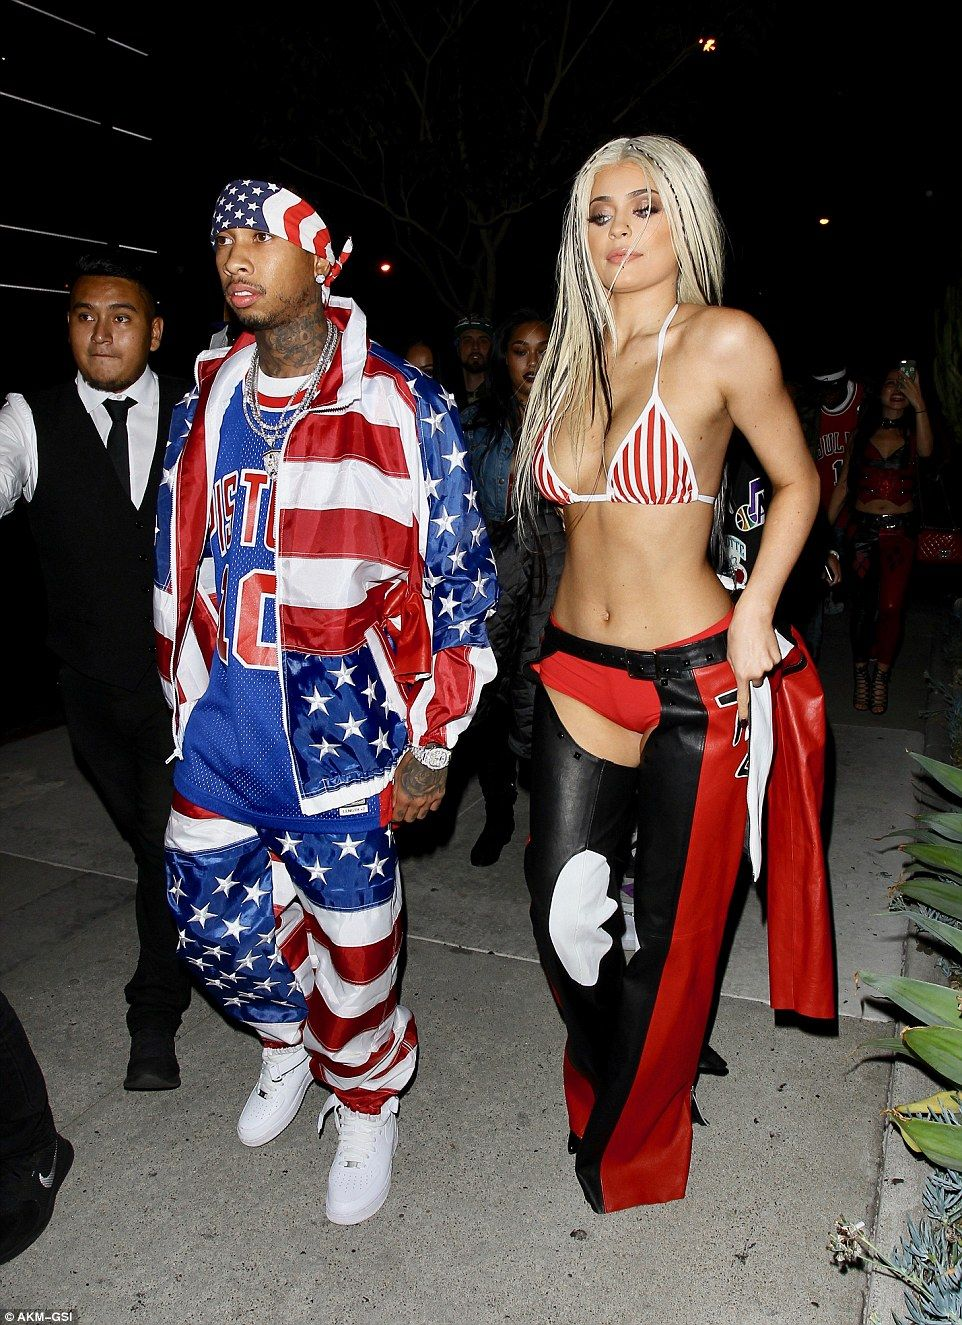 Kylie Jenner And Her Boyfriend Tyga Dressed Up In Iconic Outfits From The Early 2000s Attending A Los Angeles Party As Christina Aguilera Dirrty